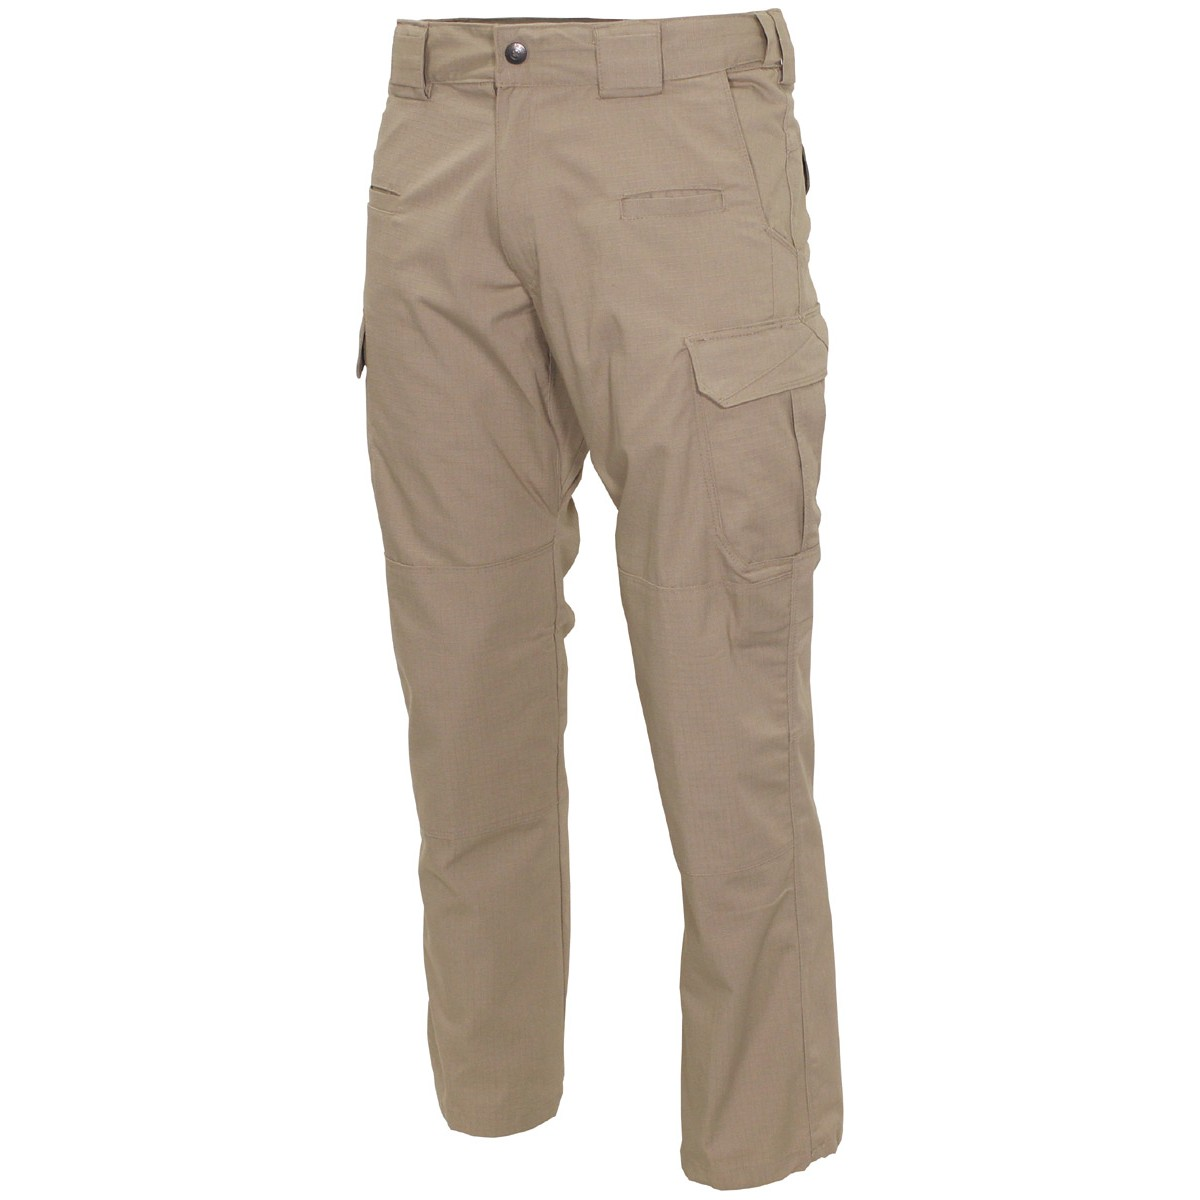 MFH® Defense High Quality Mens Tactical Teflon Coated Rip Stop Pants - Khaki